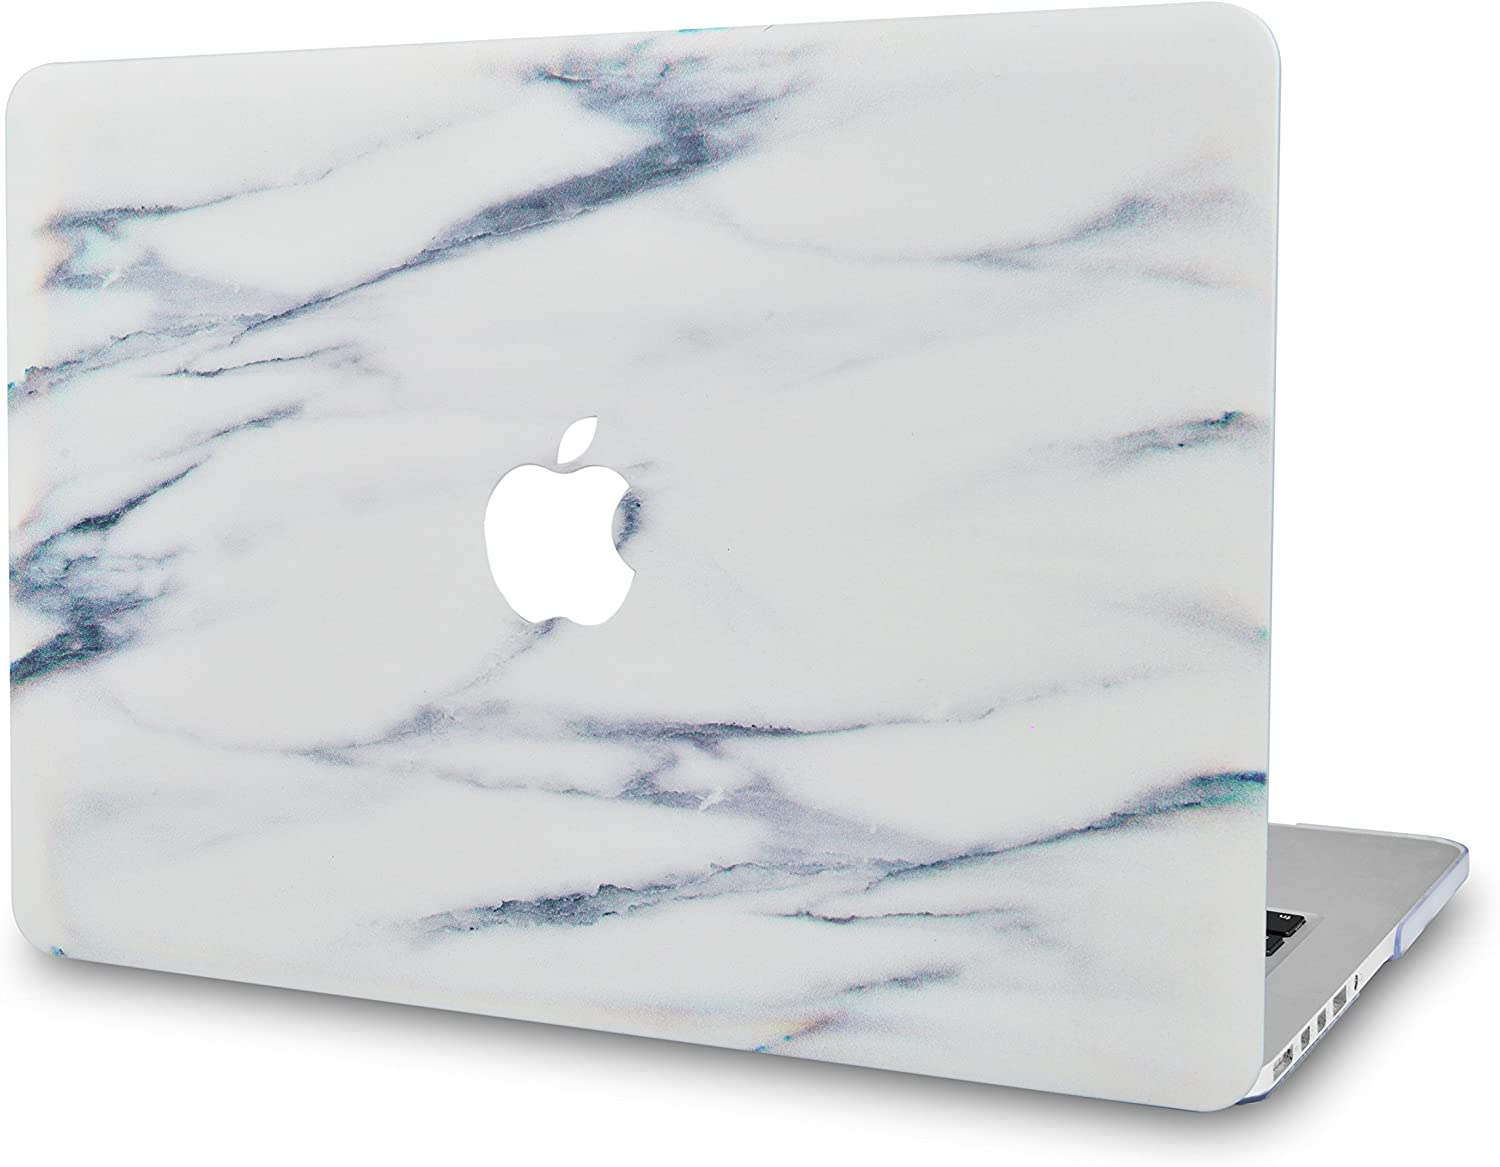 LuvCase Laptop Case for MacBook Air 13 Inch (2020/2019/2018) A2179/A1932 Retina Display (Touch ID) Rubberized Plastic Hard Shell Cover (Crystal Marble)